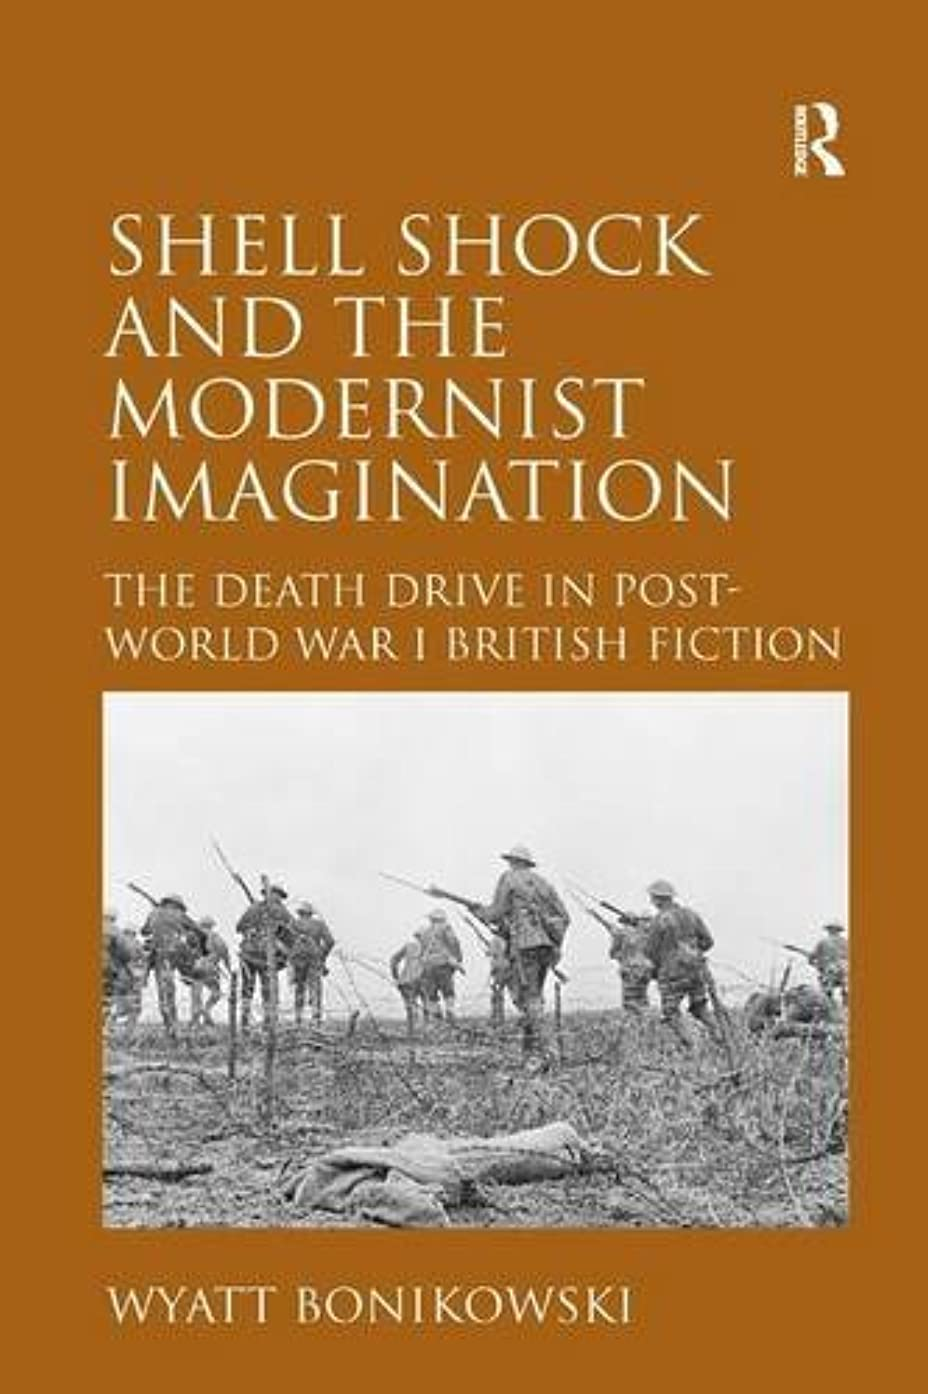 Shell Shock and the Modernist Imagination: The Death Drive in Post-World War I British Fiction